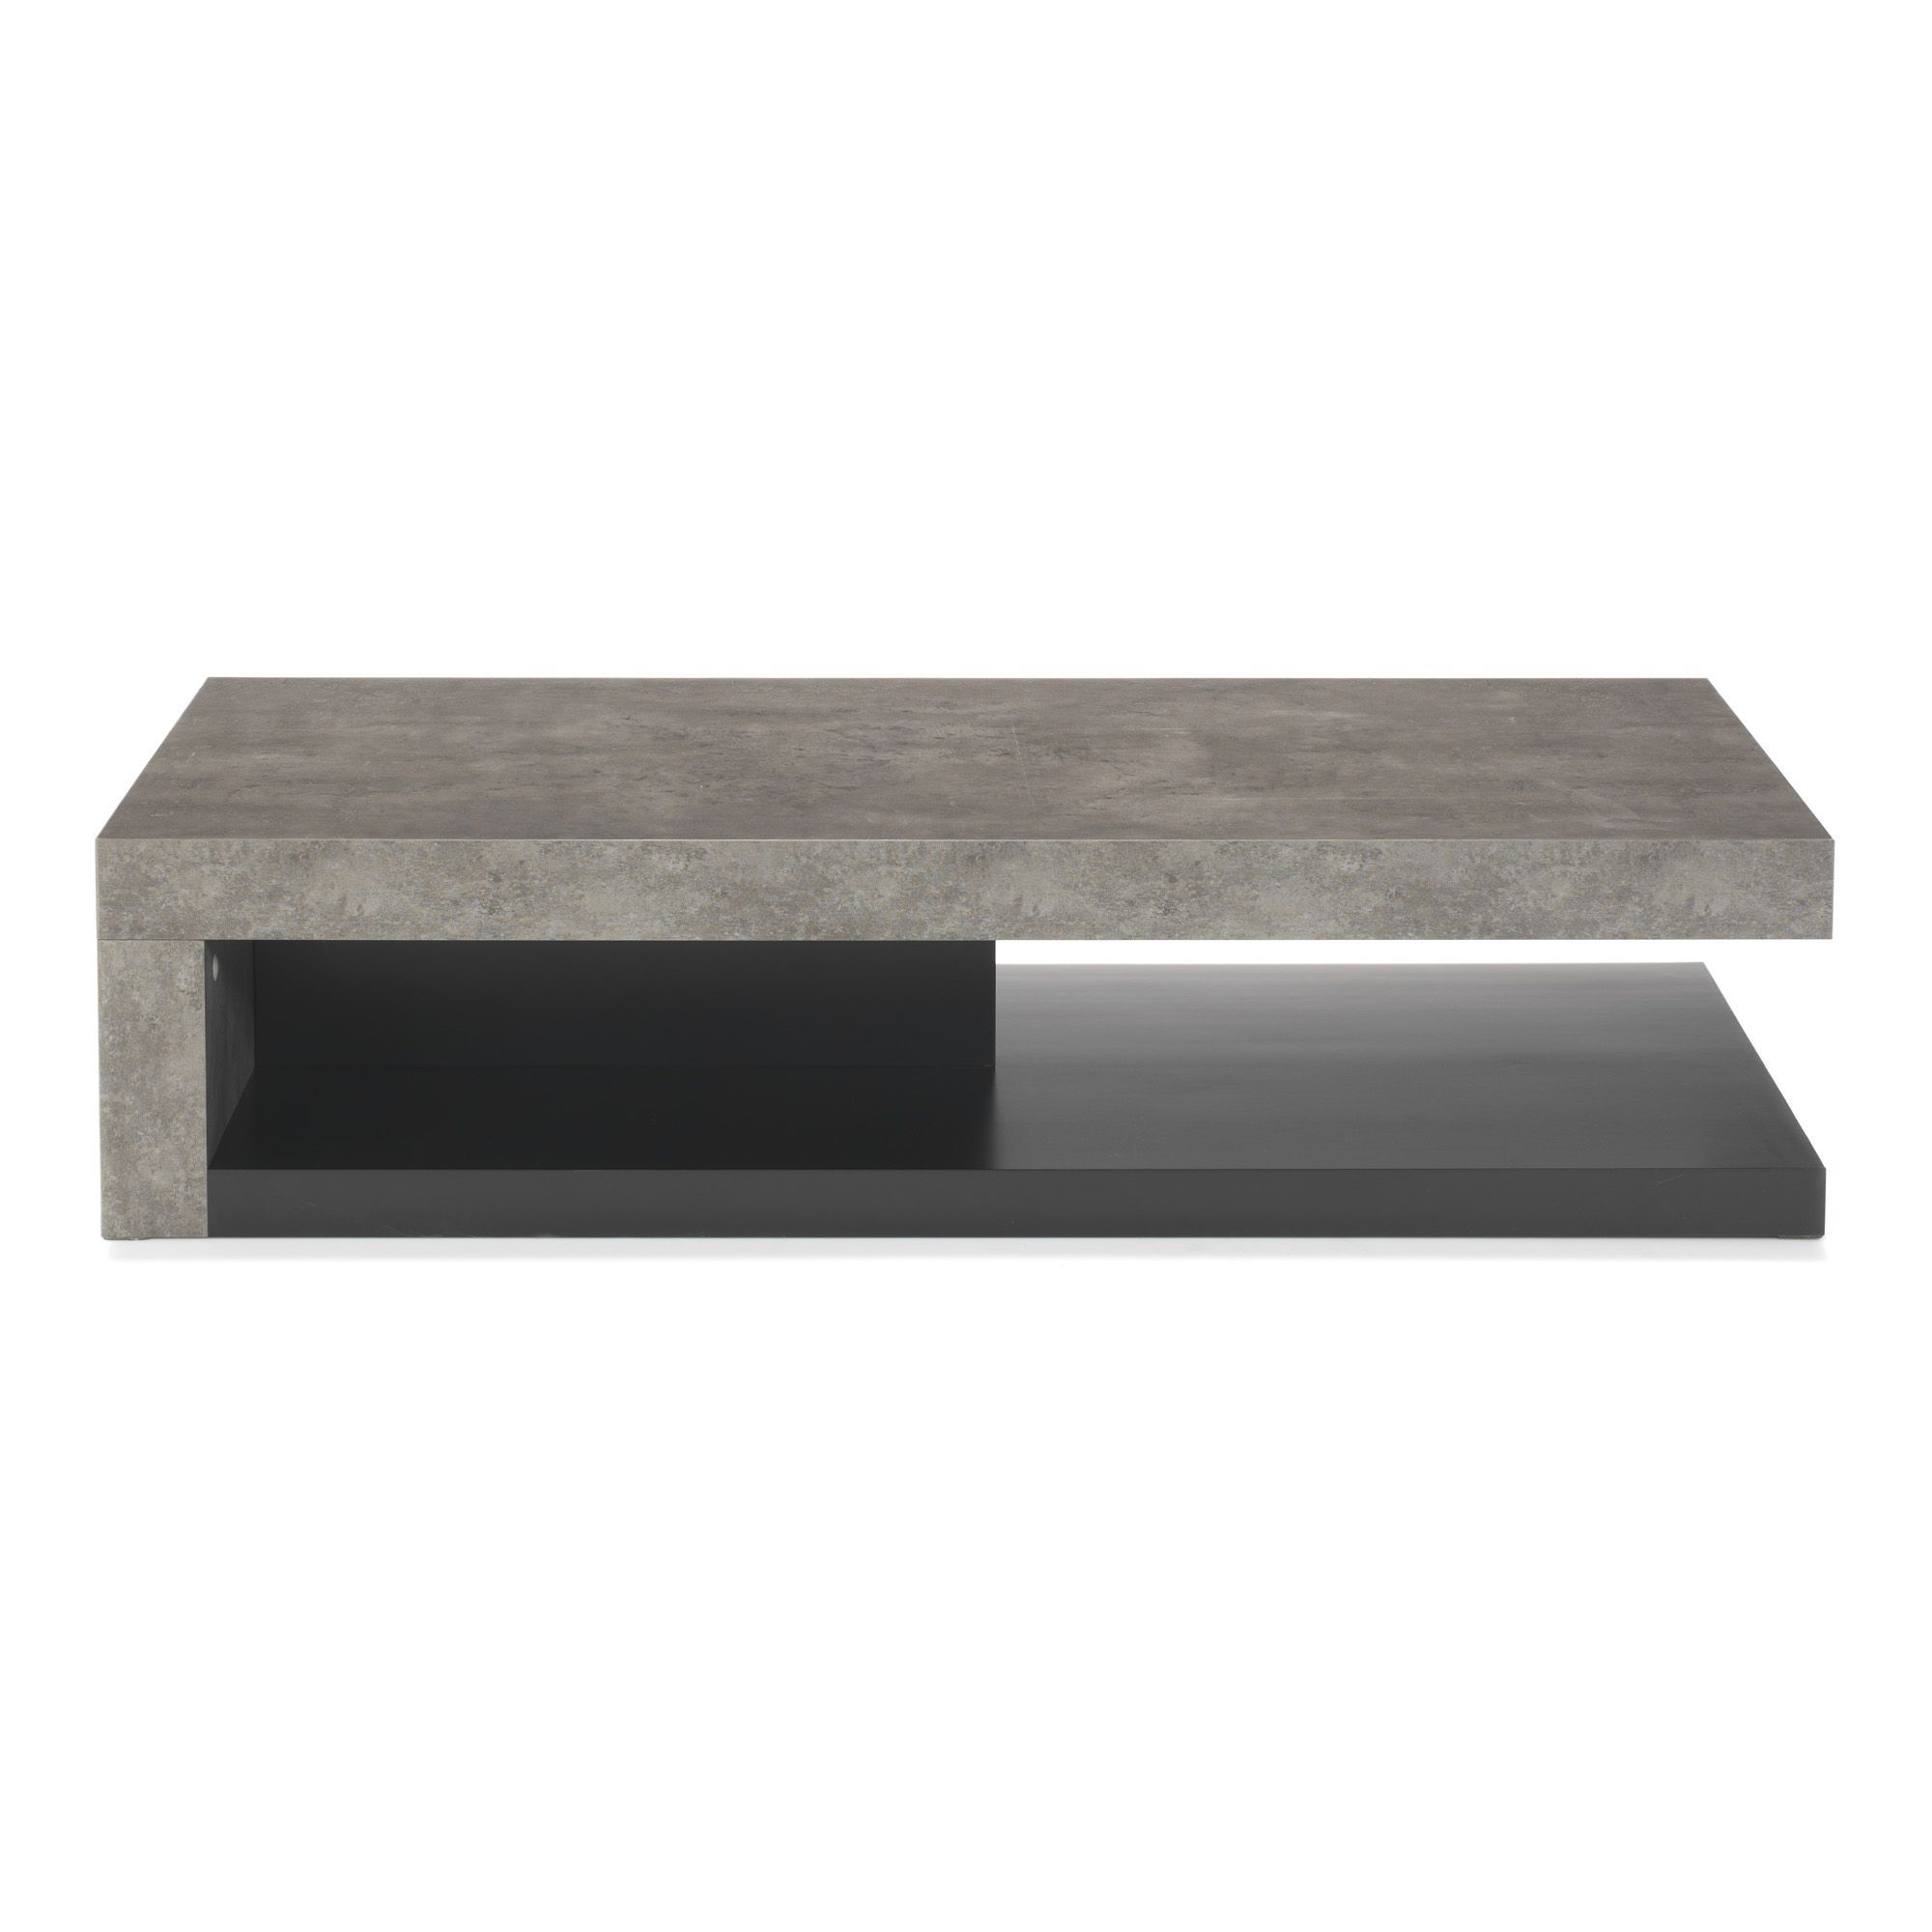 table basse effet b ton gris et noir hilo les tables basses tables basses et bouts de. Black Bedroom Furniture Sets. Home Design Ideas